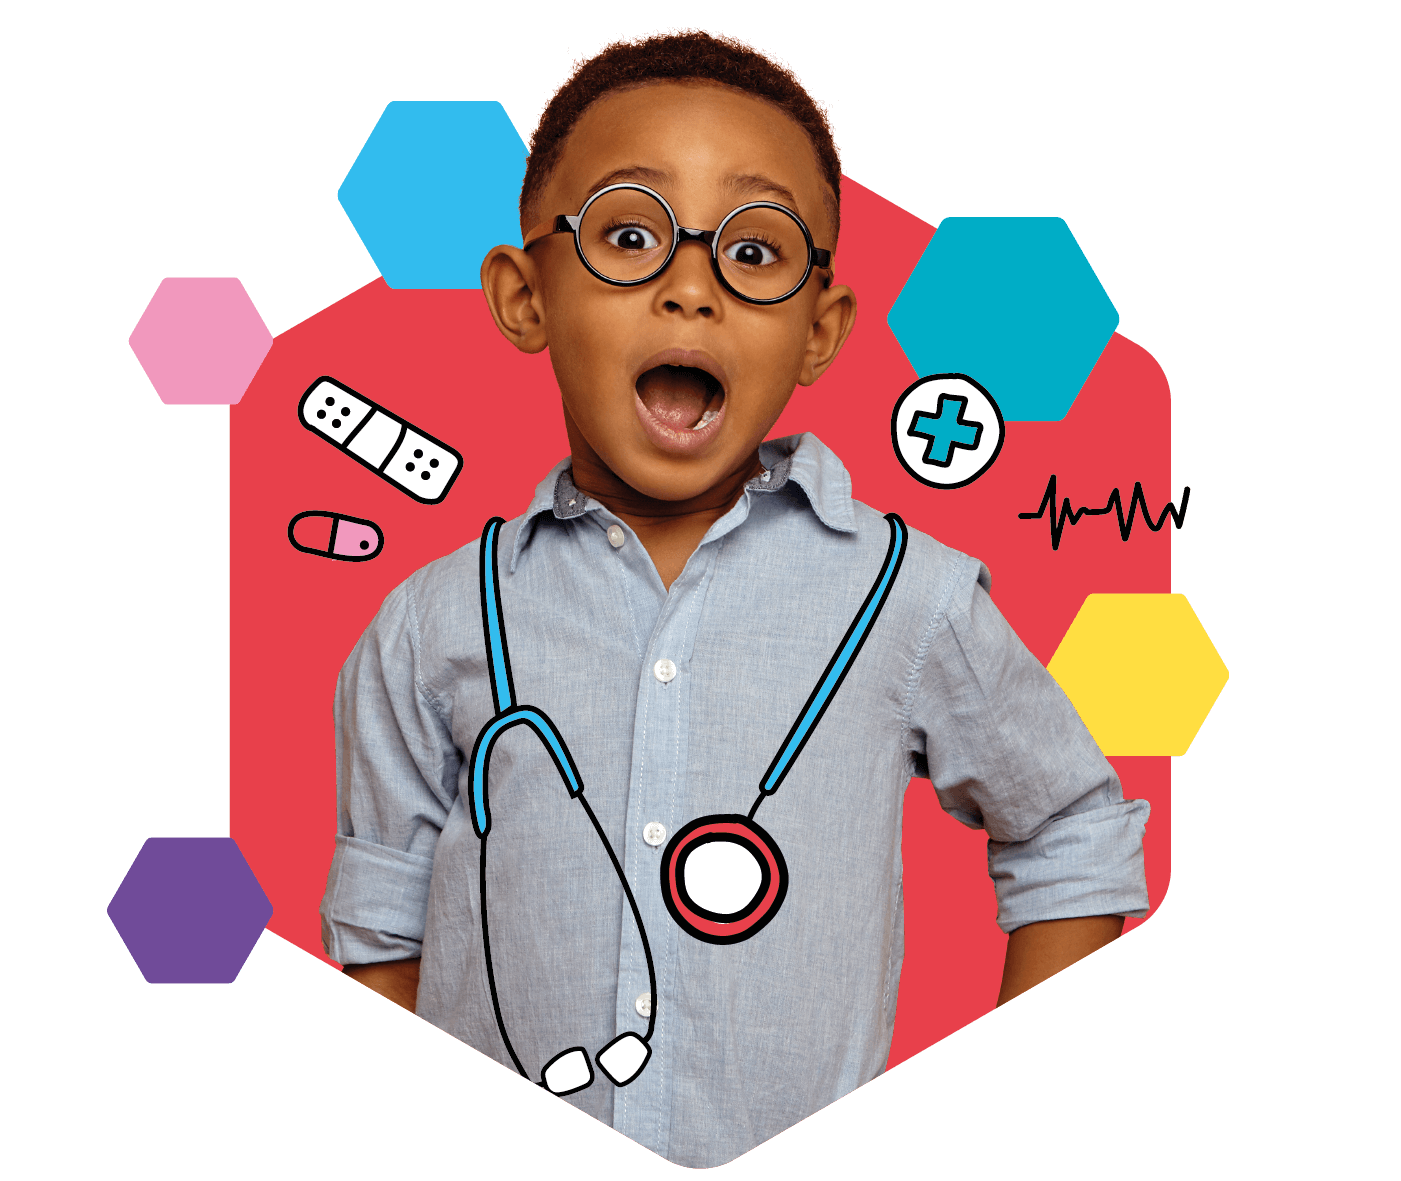 Young boy dressed up as a doctor with a stethoscope around his neck